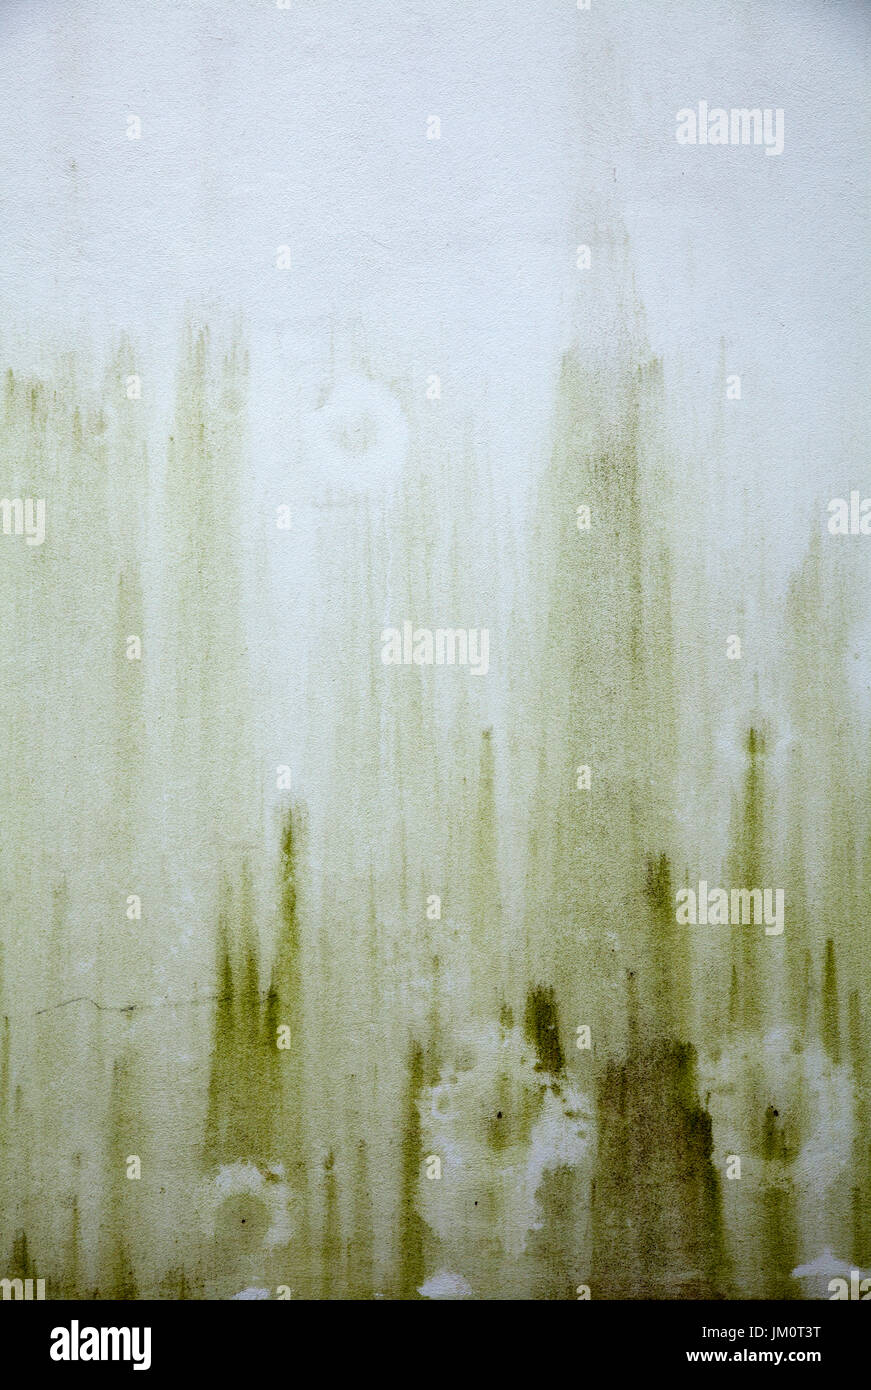 Green Damp Stains on Outdoor Wall - Stock Image